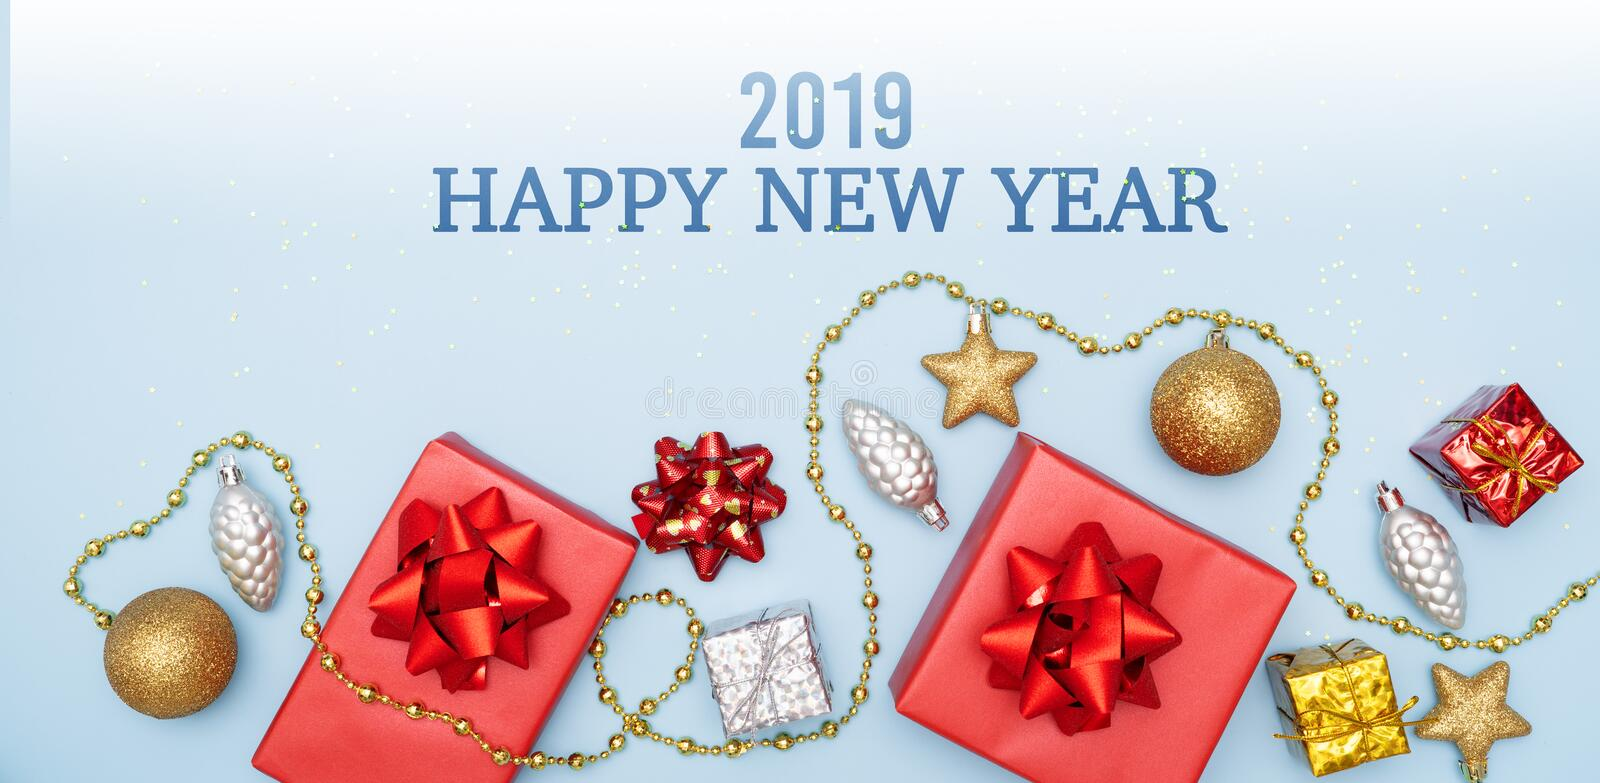 2019 Happy New Year concept, gifts boxes or presents boxes with red bows, star and ball on blue background royalty free stock photos